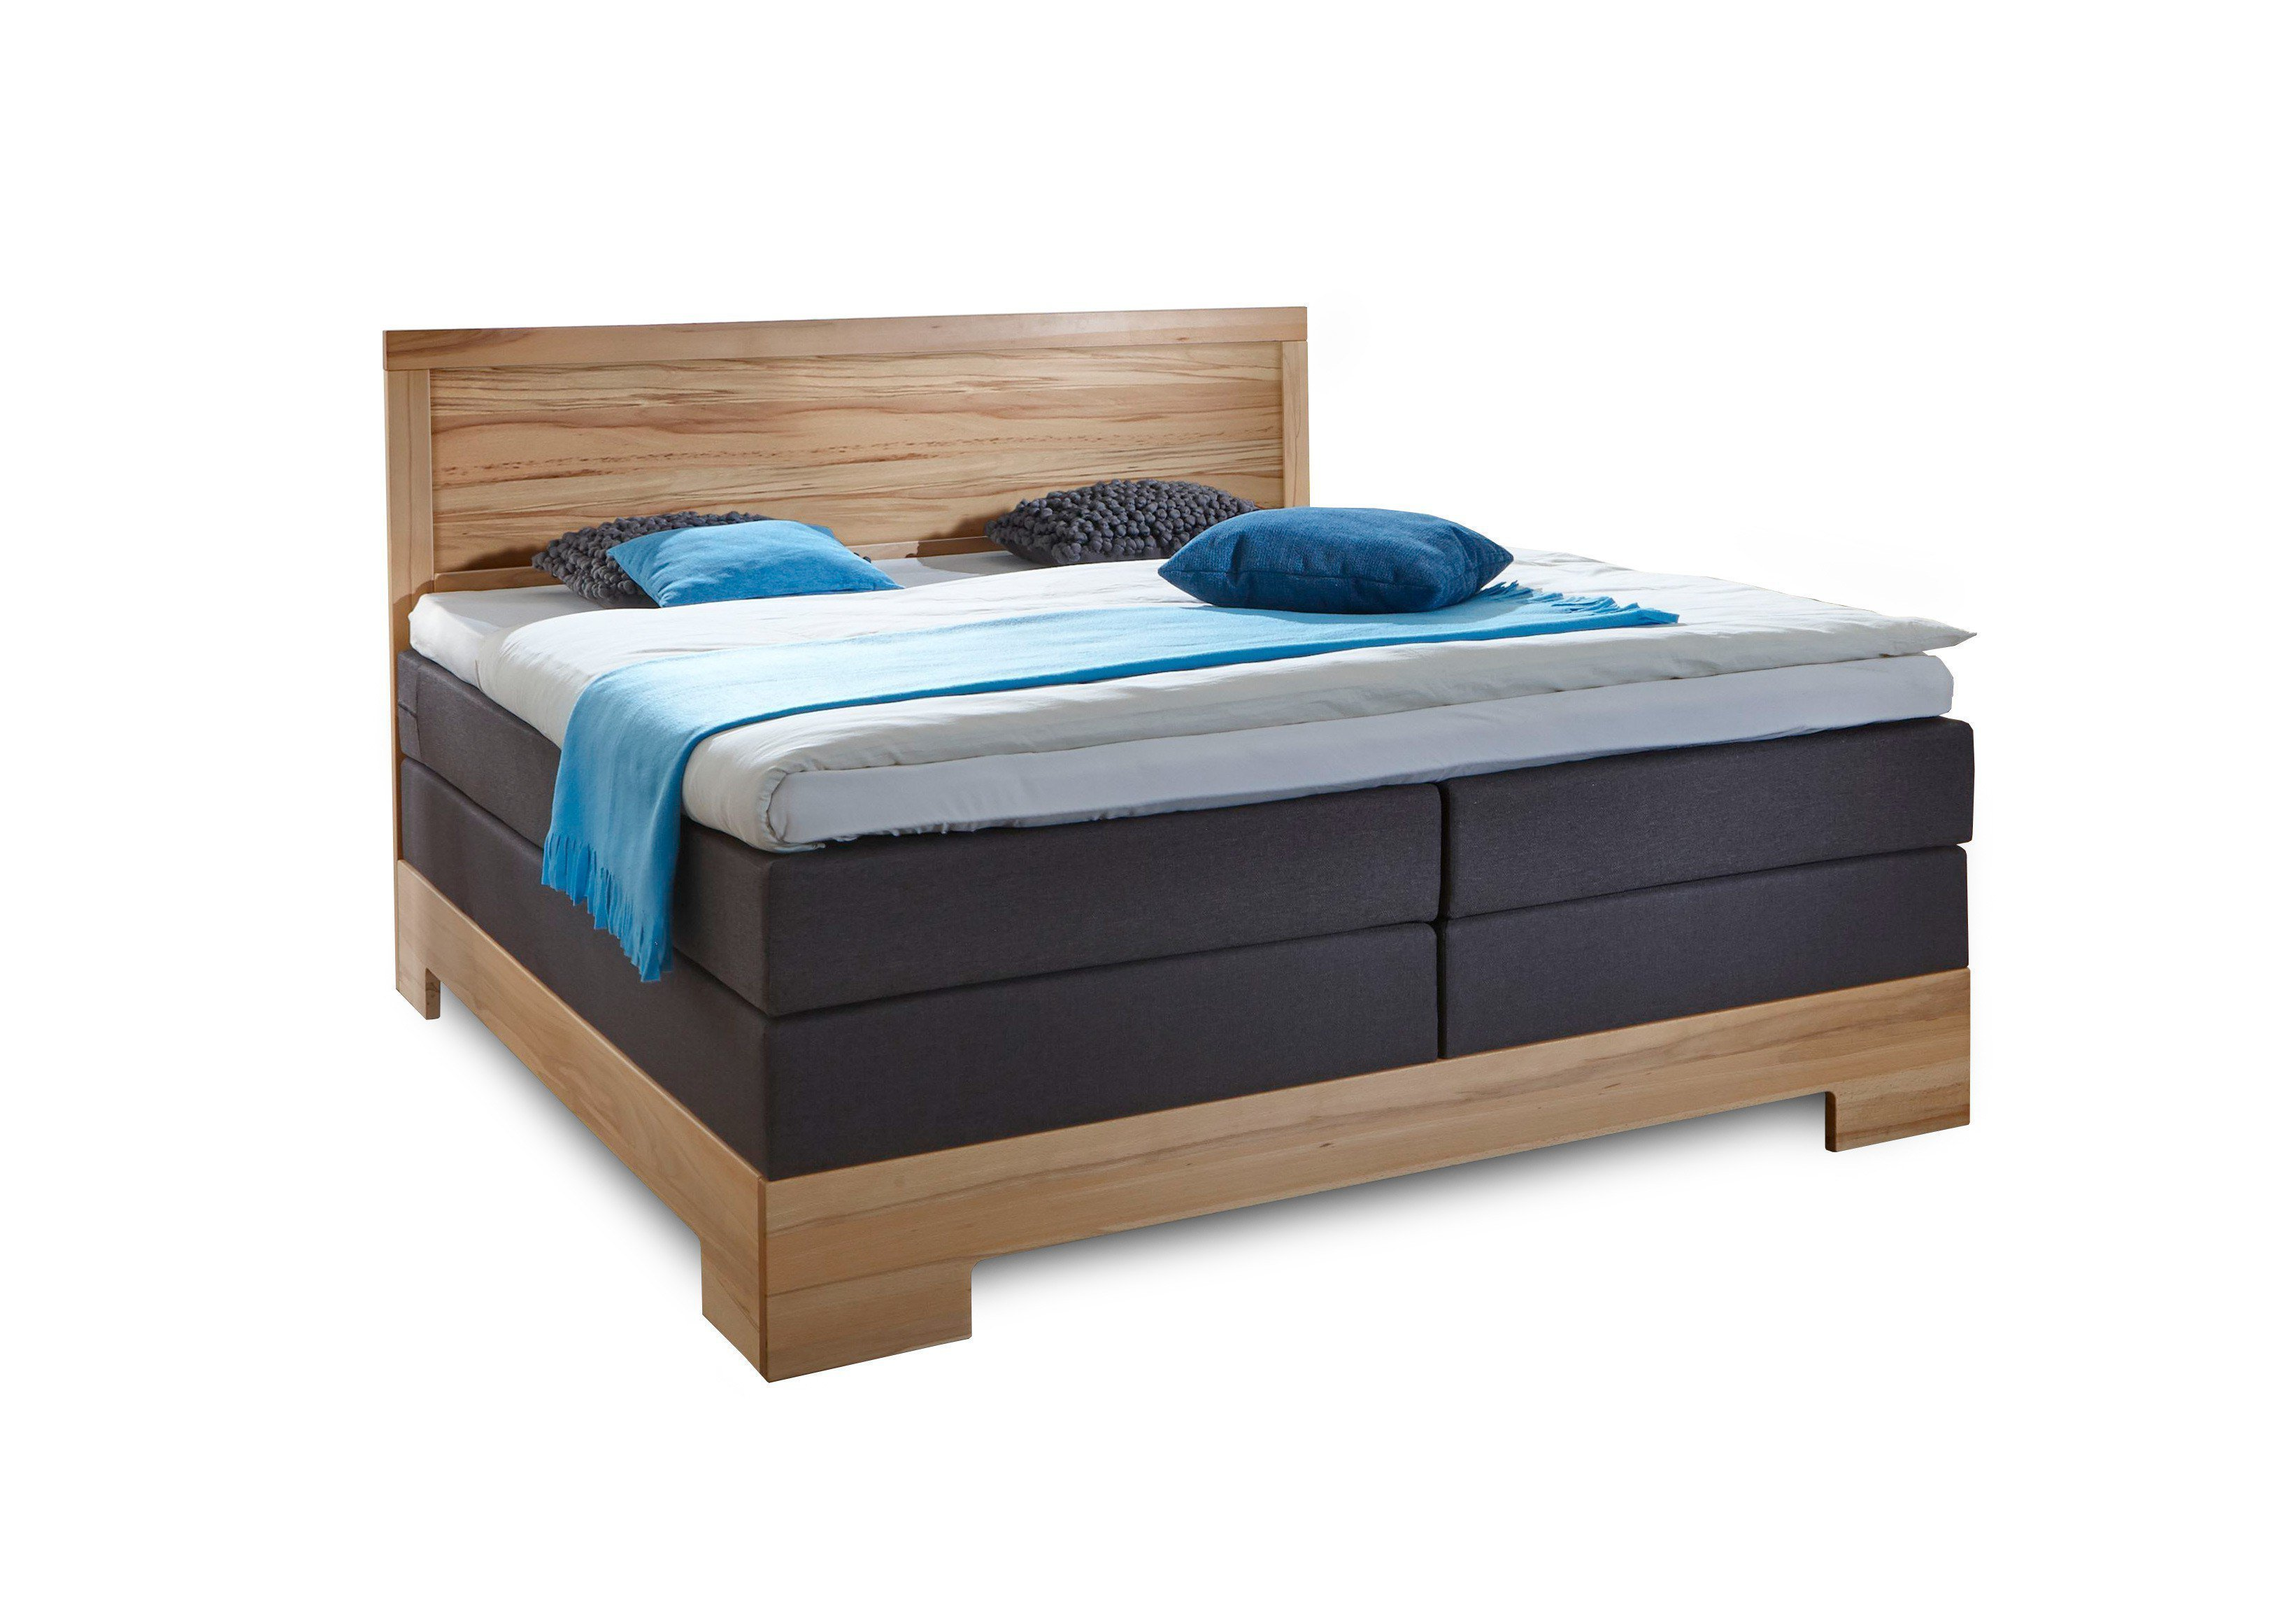 dico boxspringbett mit holzkopfteil in kernbuche ge lt. Black Bedroom Furniture Sets. Home Design Ideas